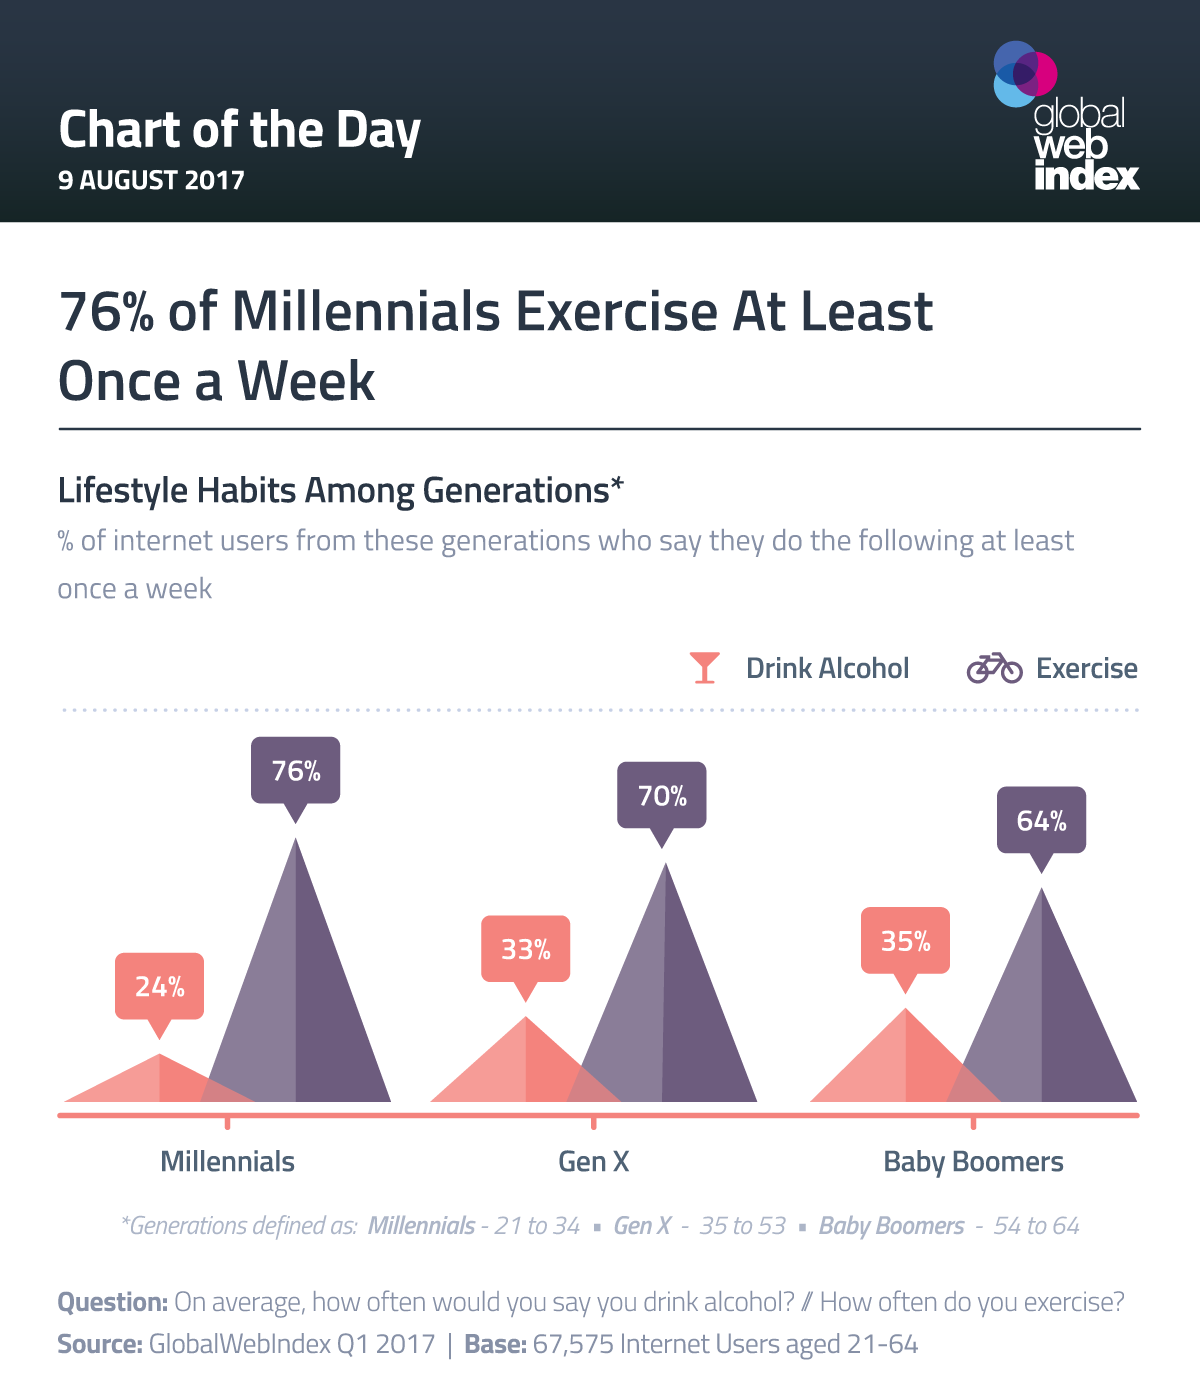 76% of Millennials Exercise At Least Once a Week